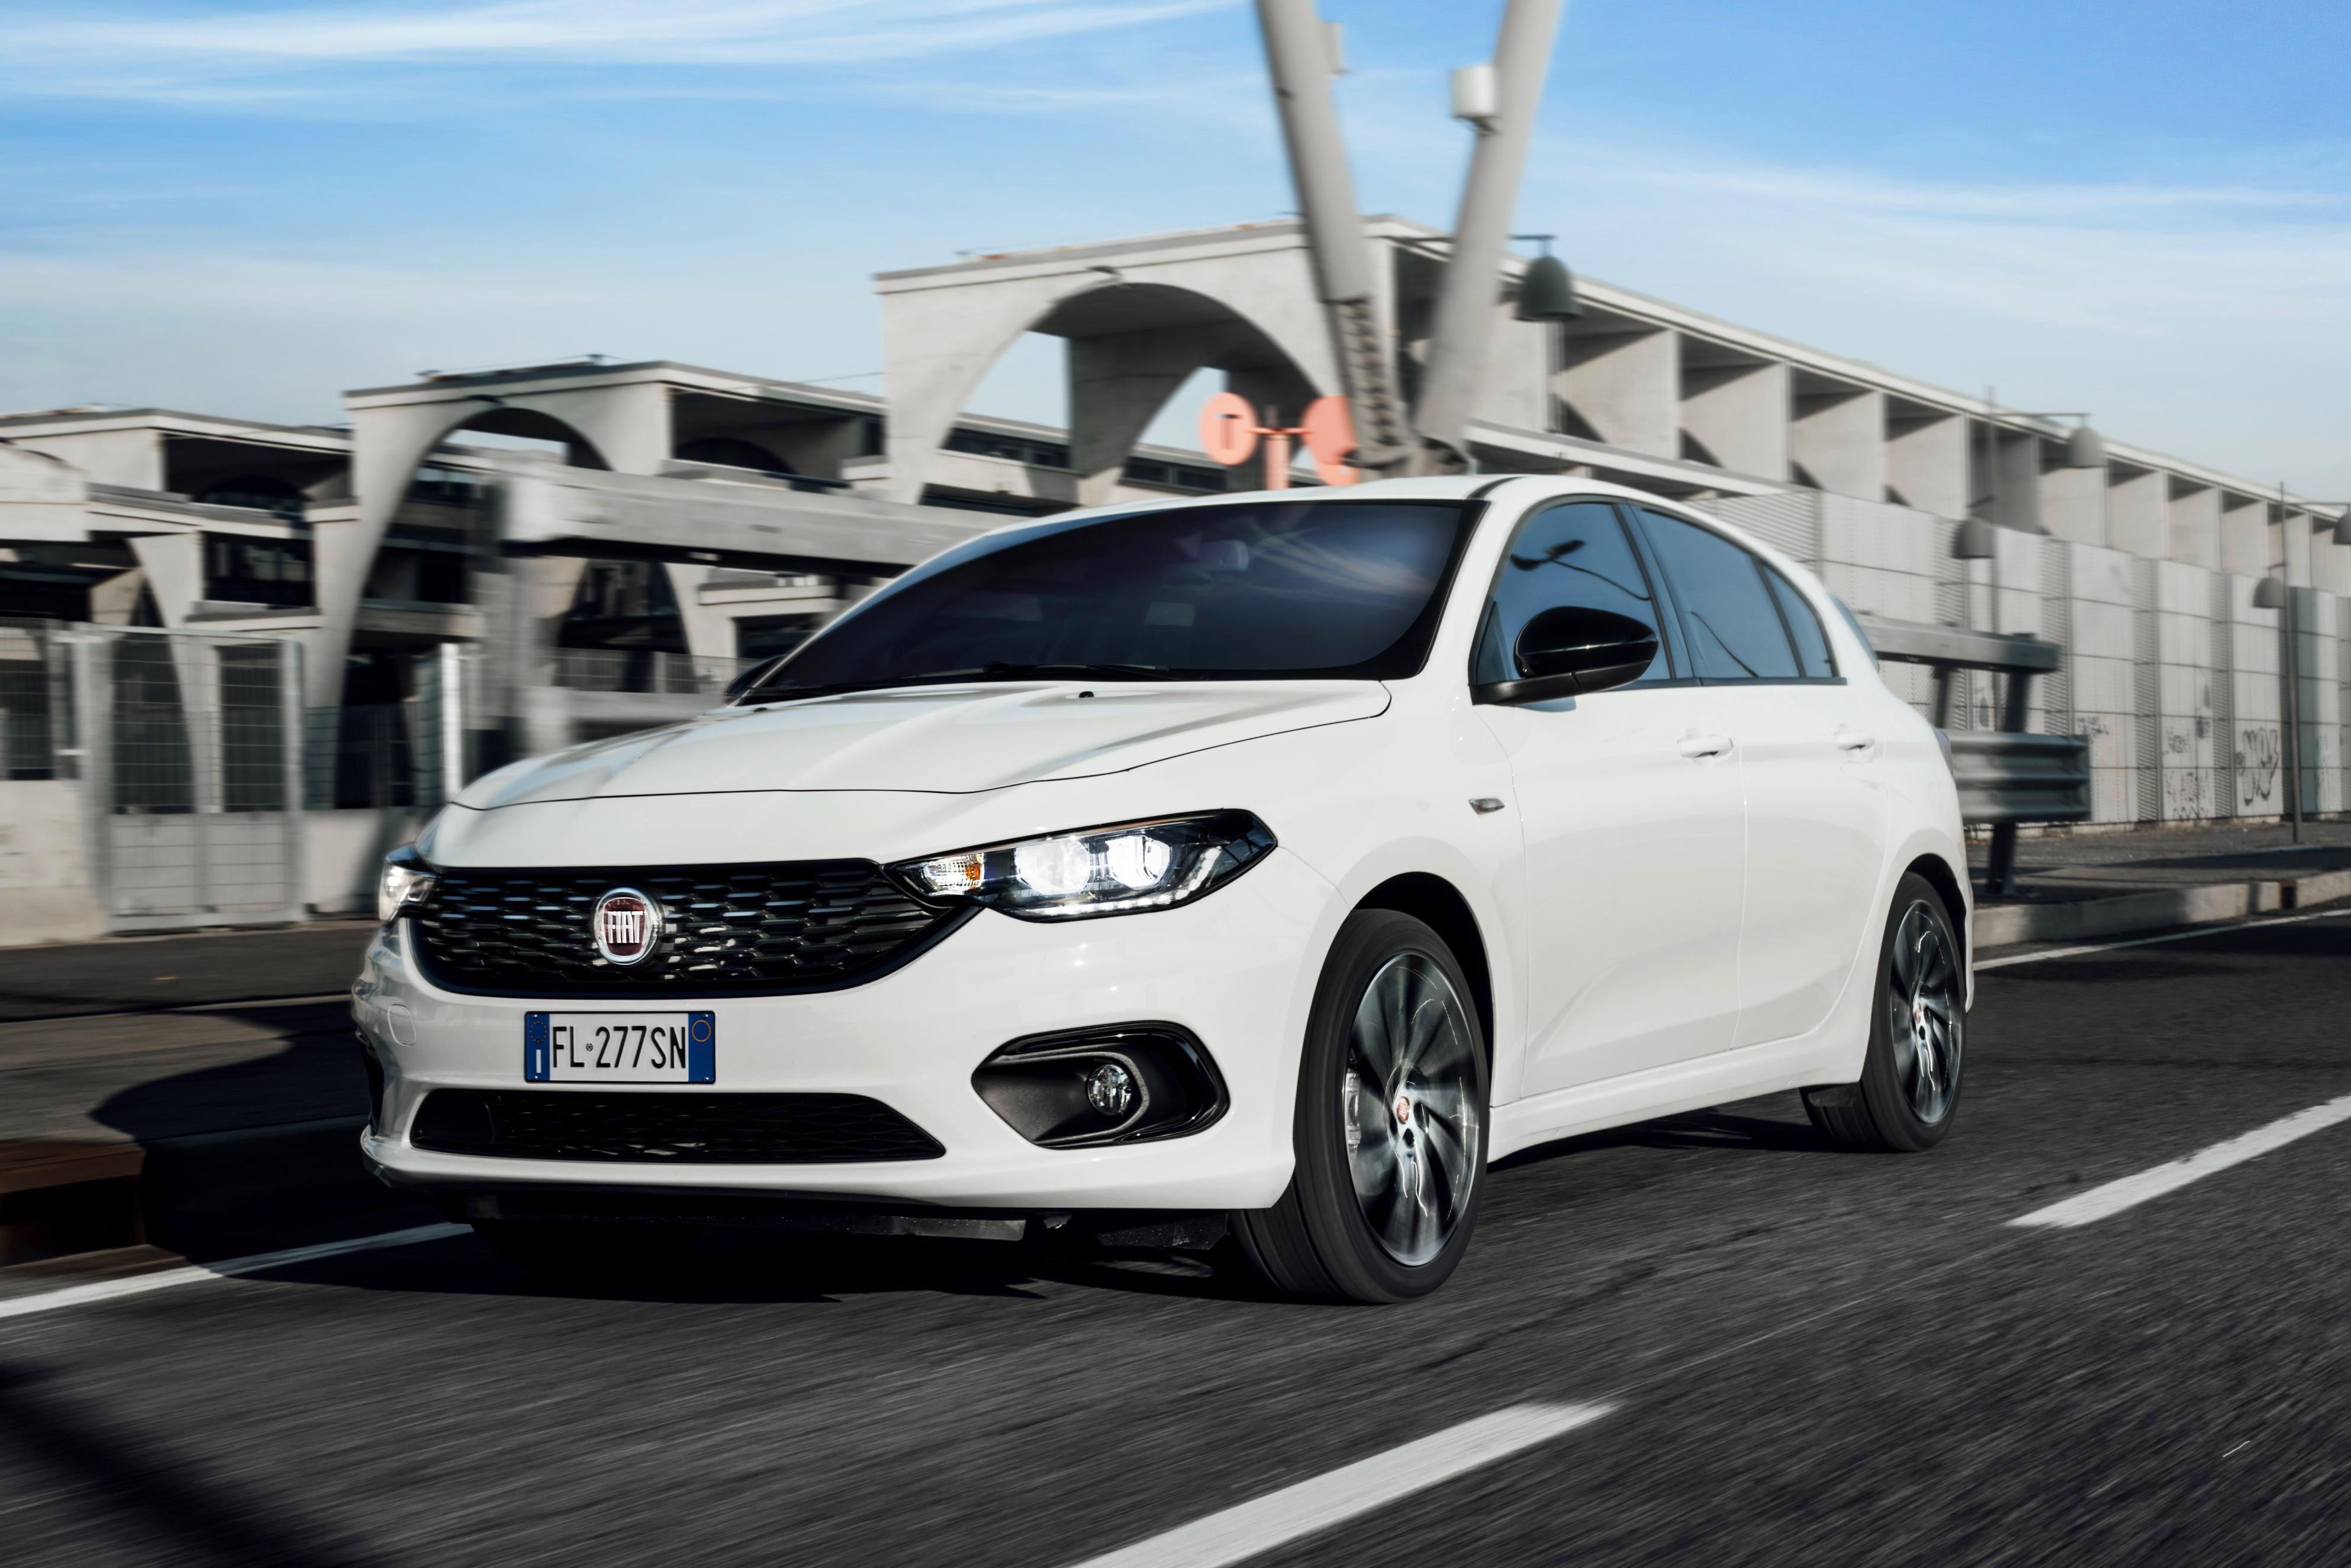 White Fiat Tipo driving on a wet road